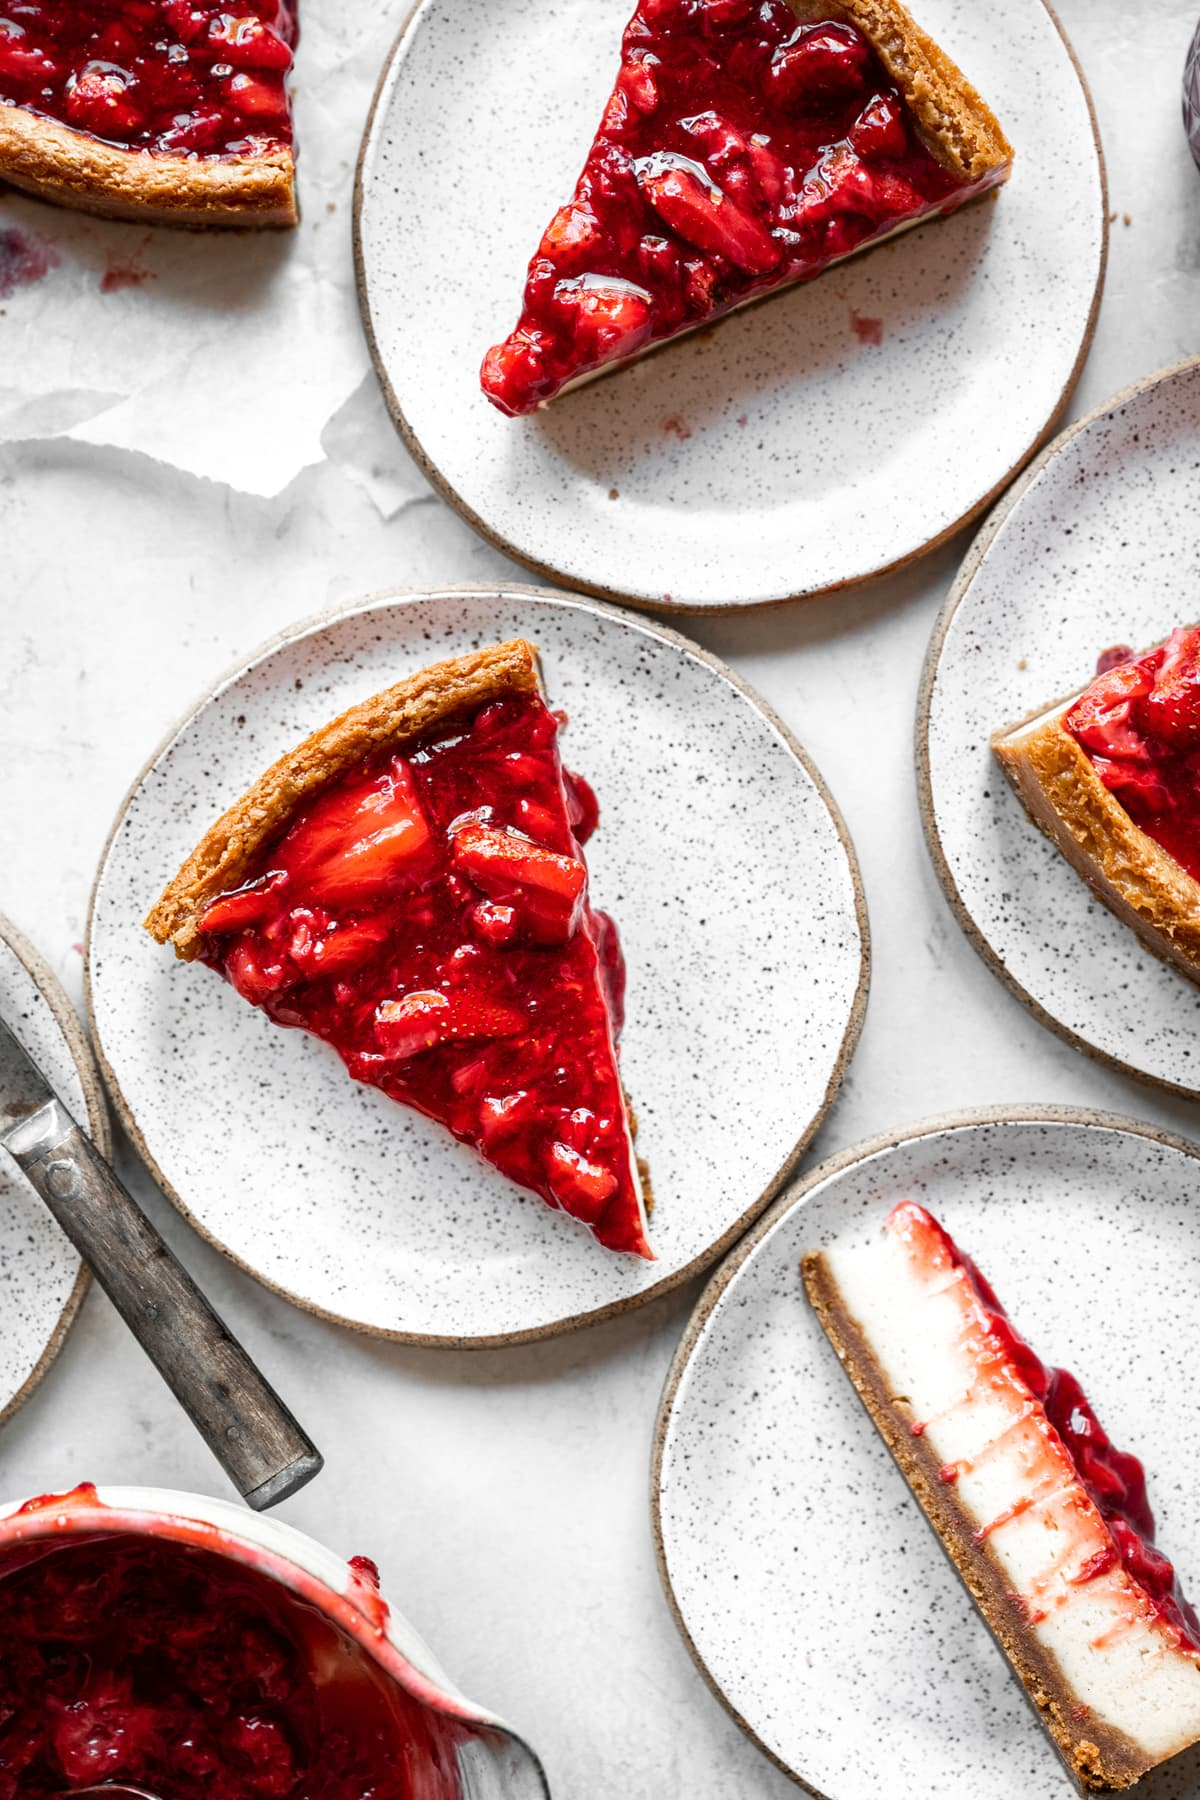 overhead view of slices of baked strawberry vegan cheesecake on small plates